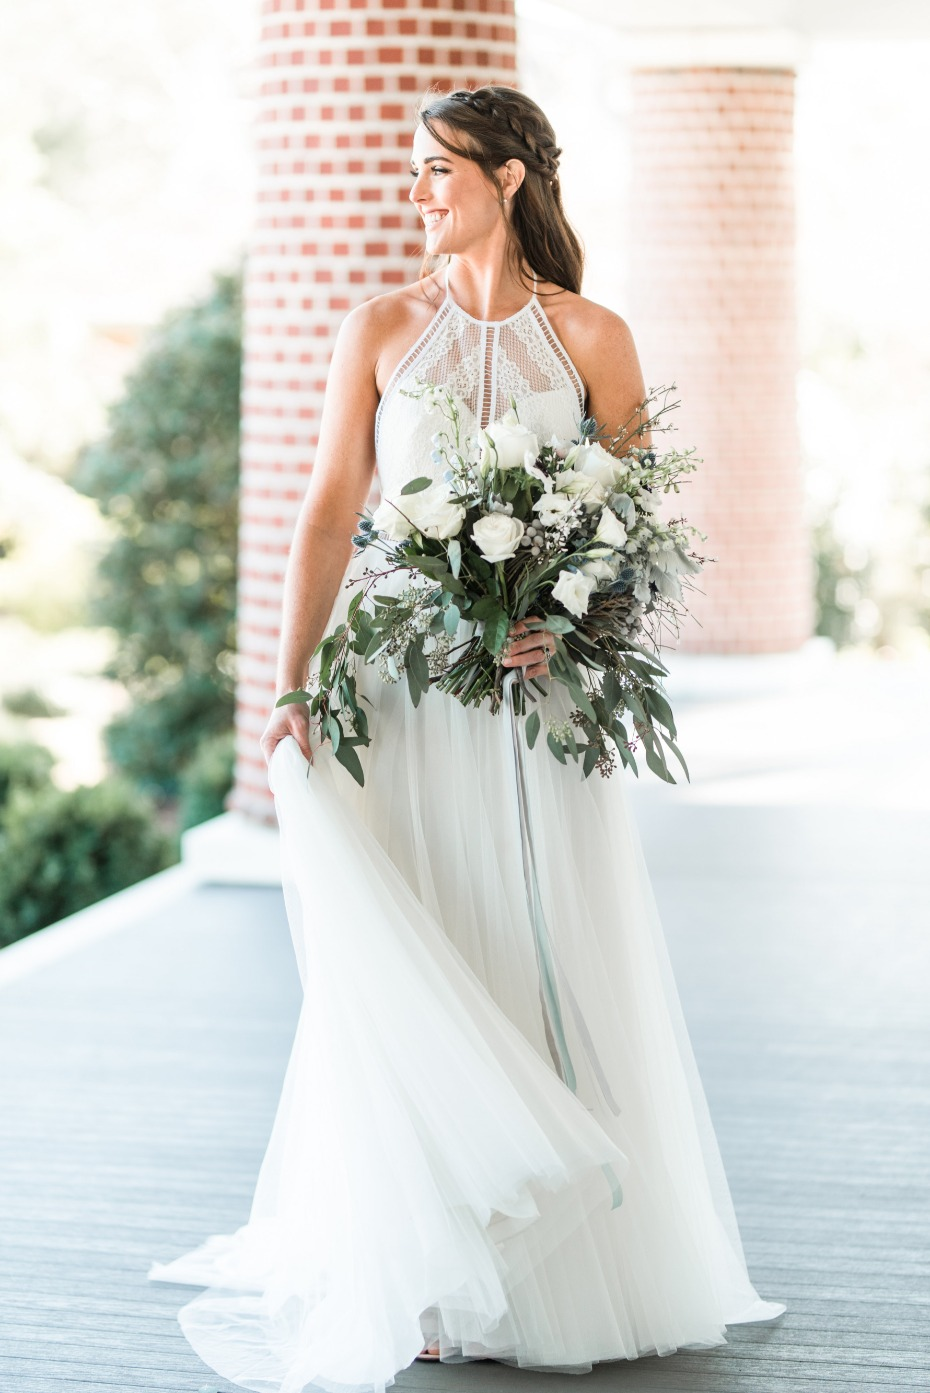 Boho chic bridal look and bouquet